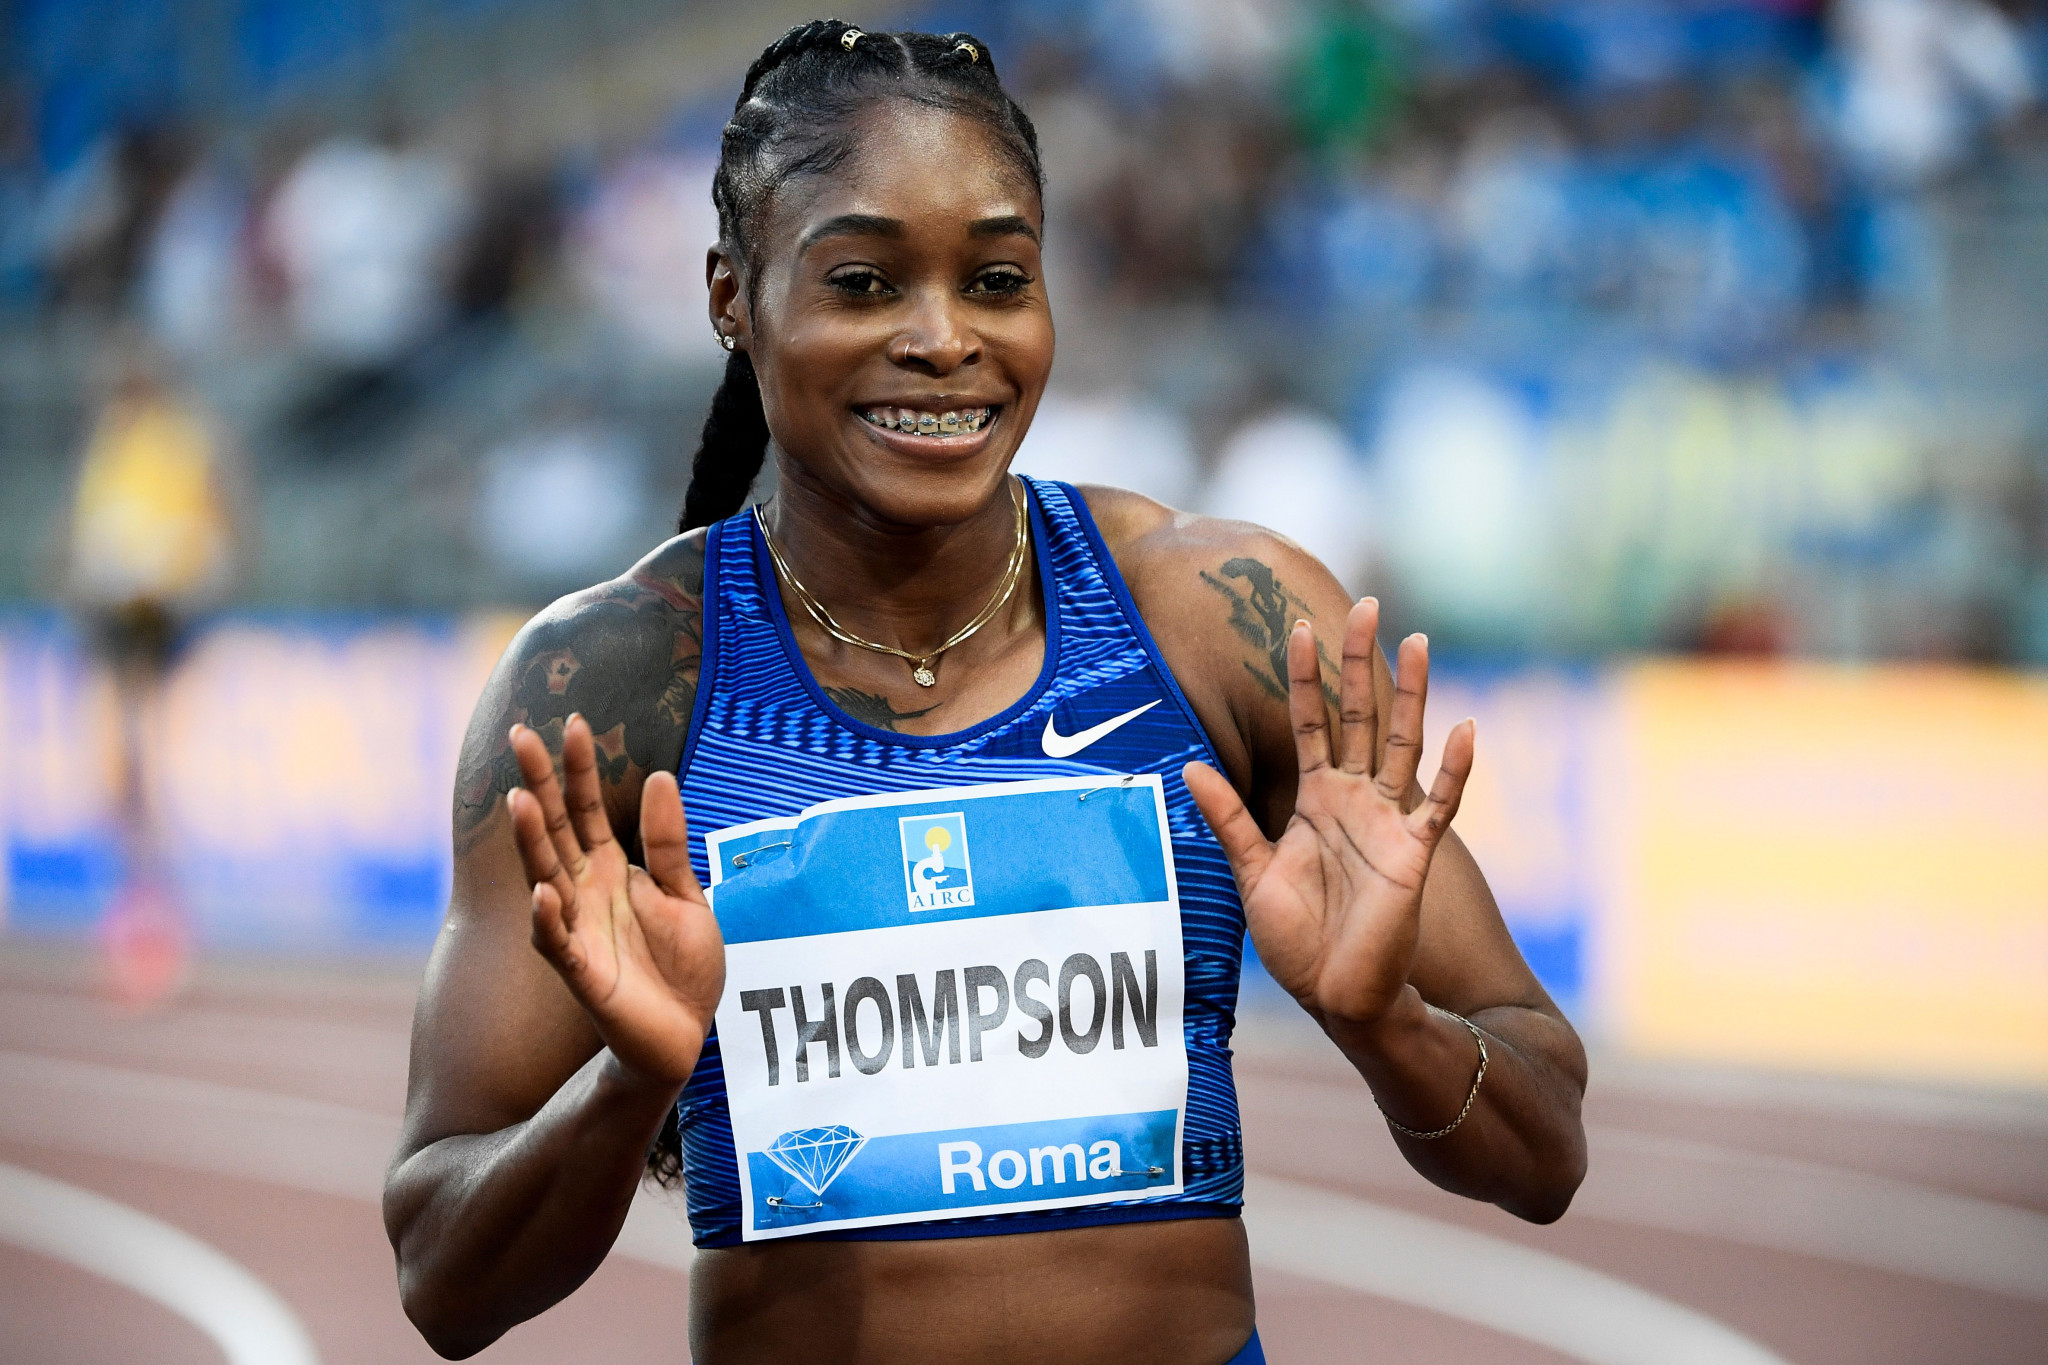 Reigning Olympic champion Elaine Thompson has been named in the Jamaican team ©Getty Images